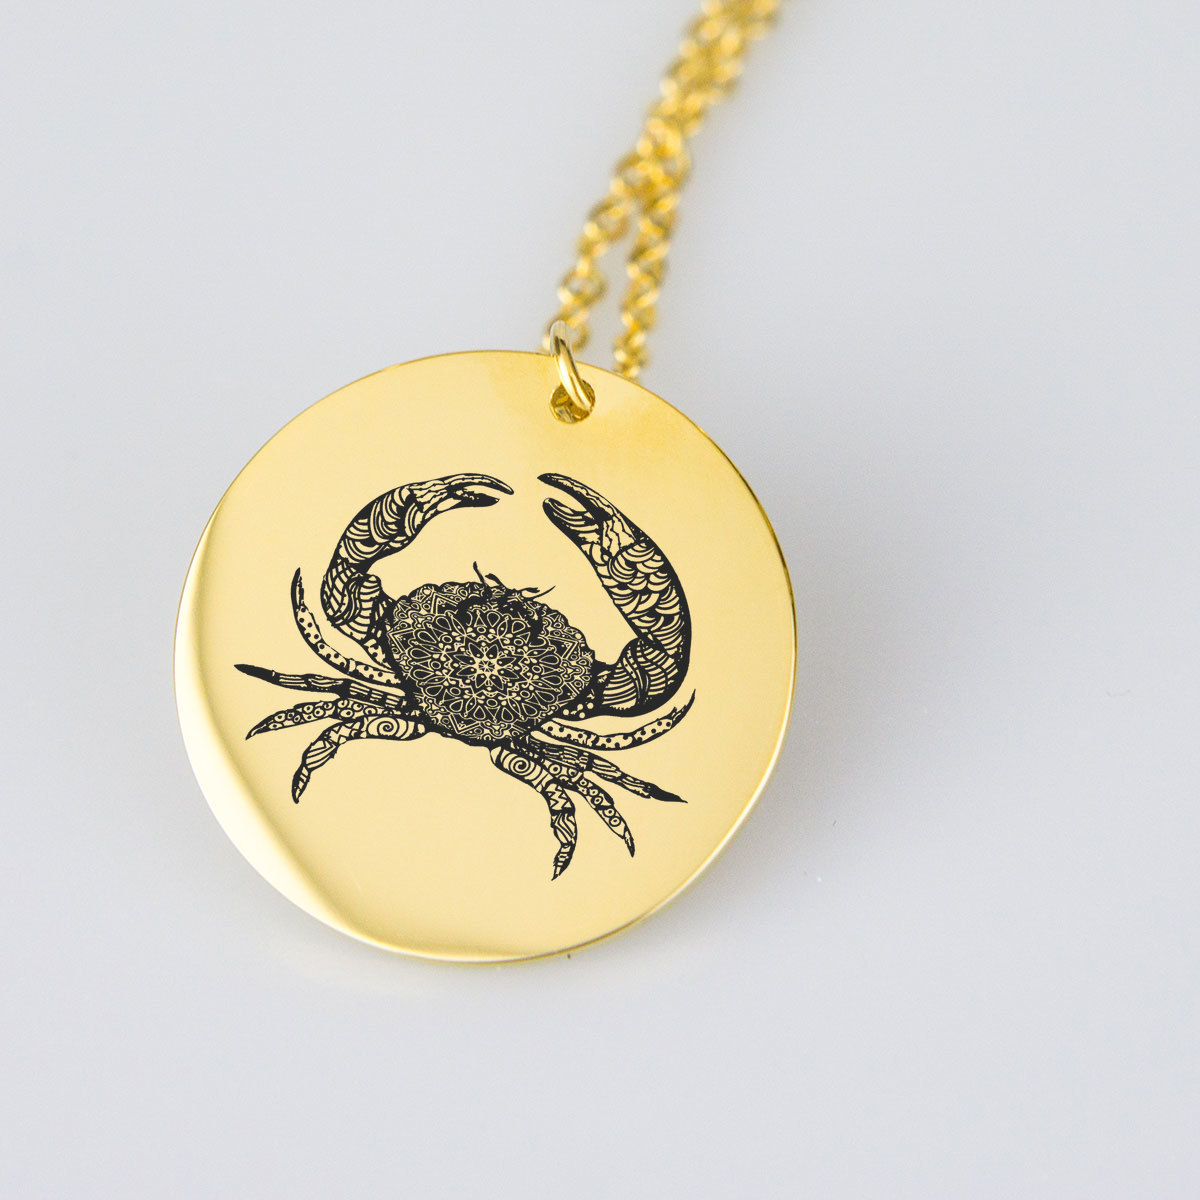 Engraved Crab Charm Necklace